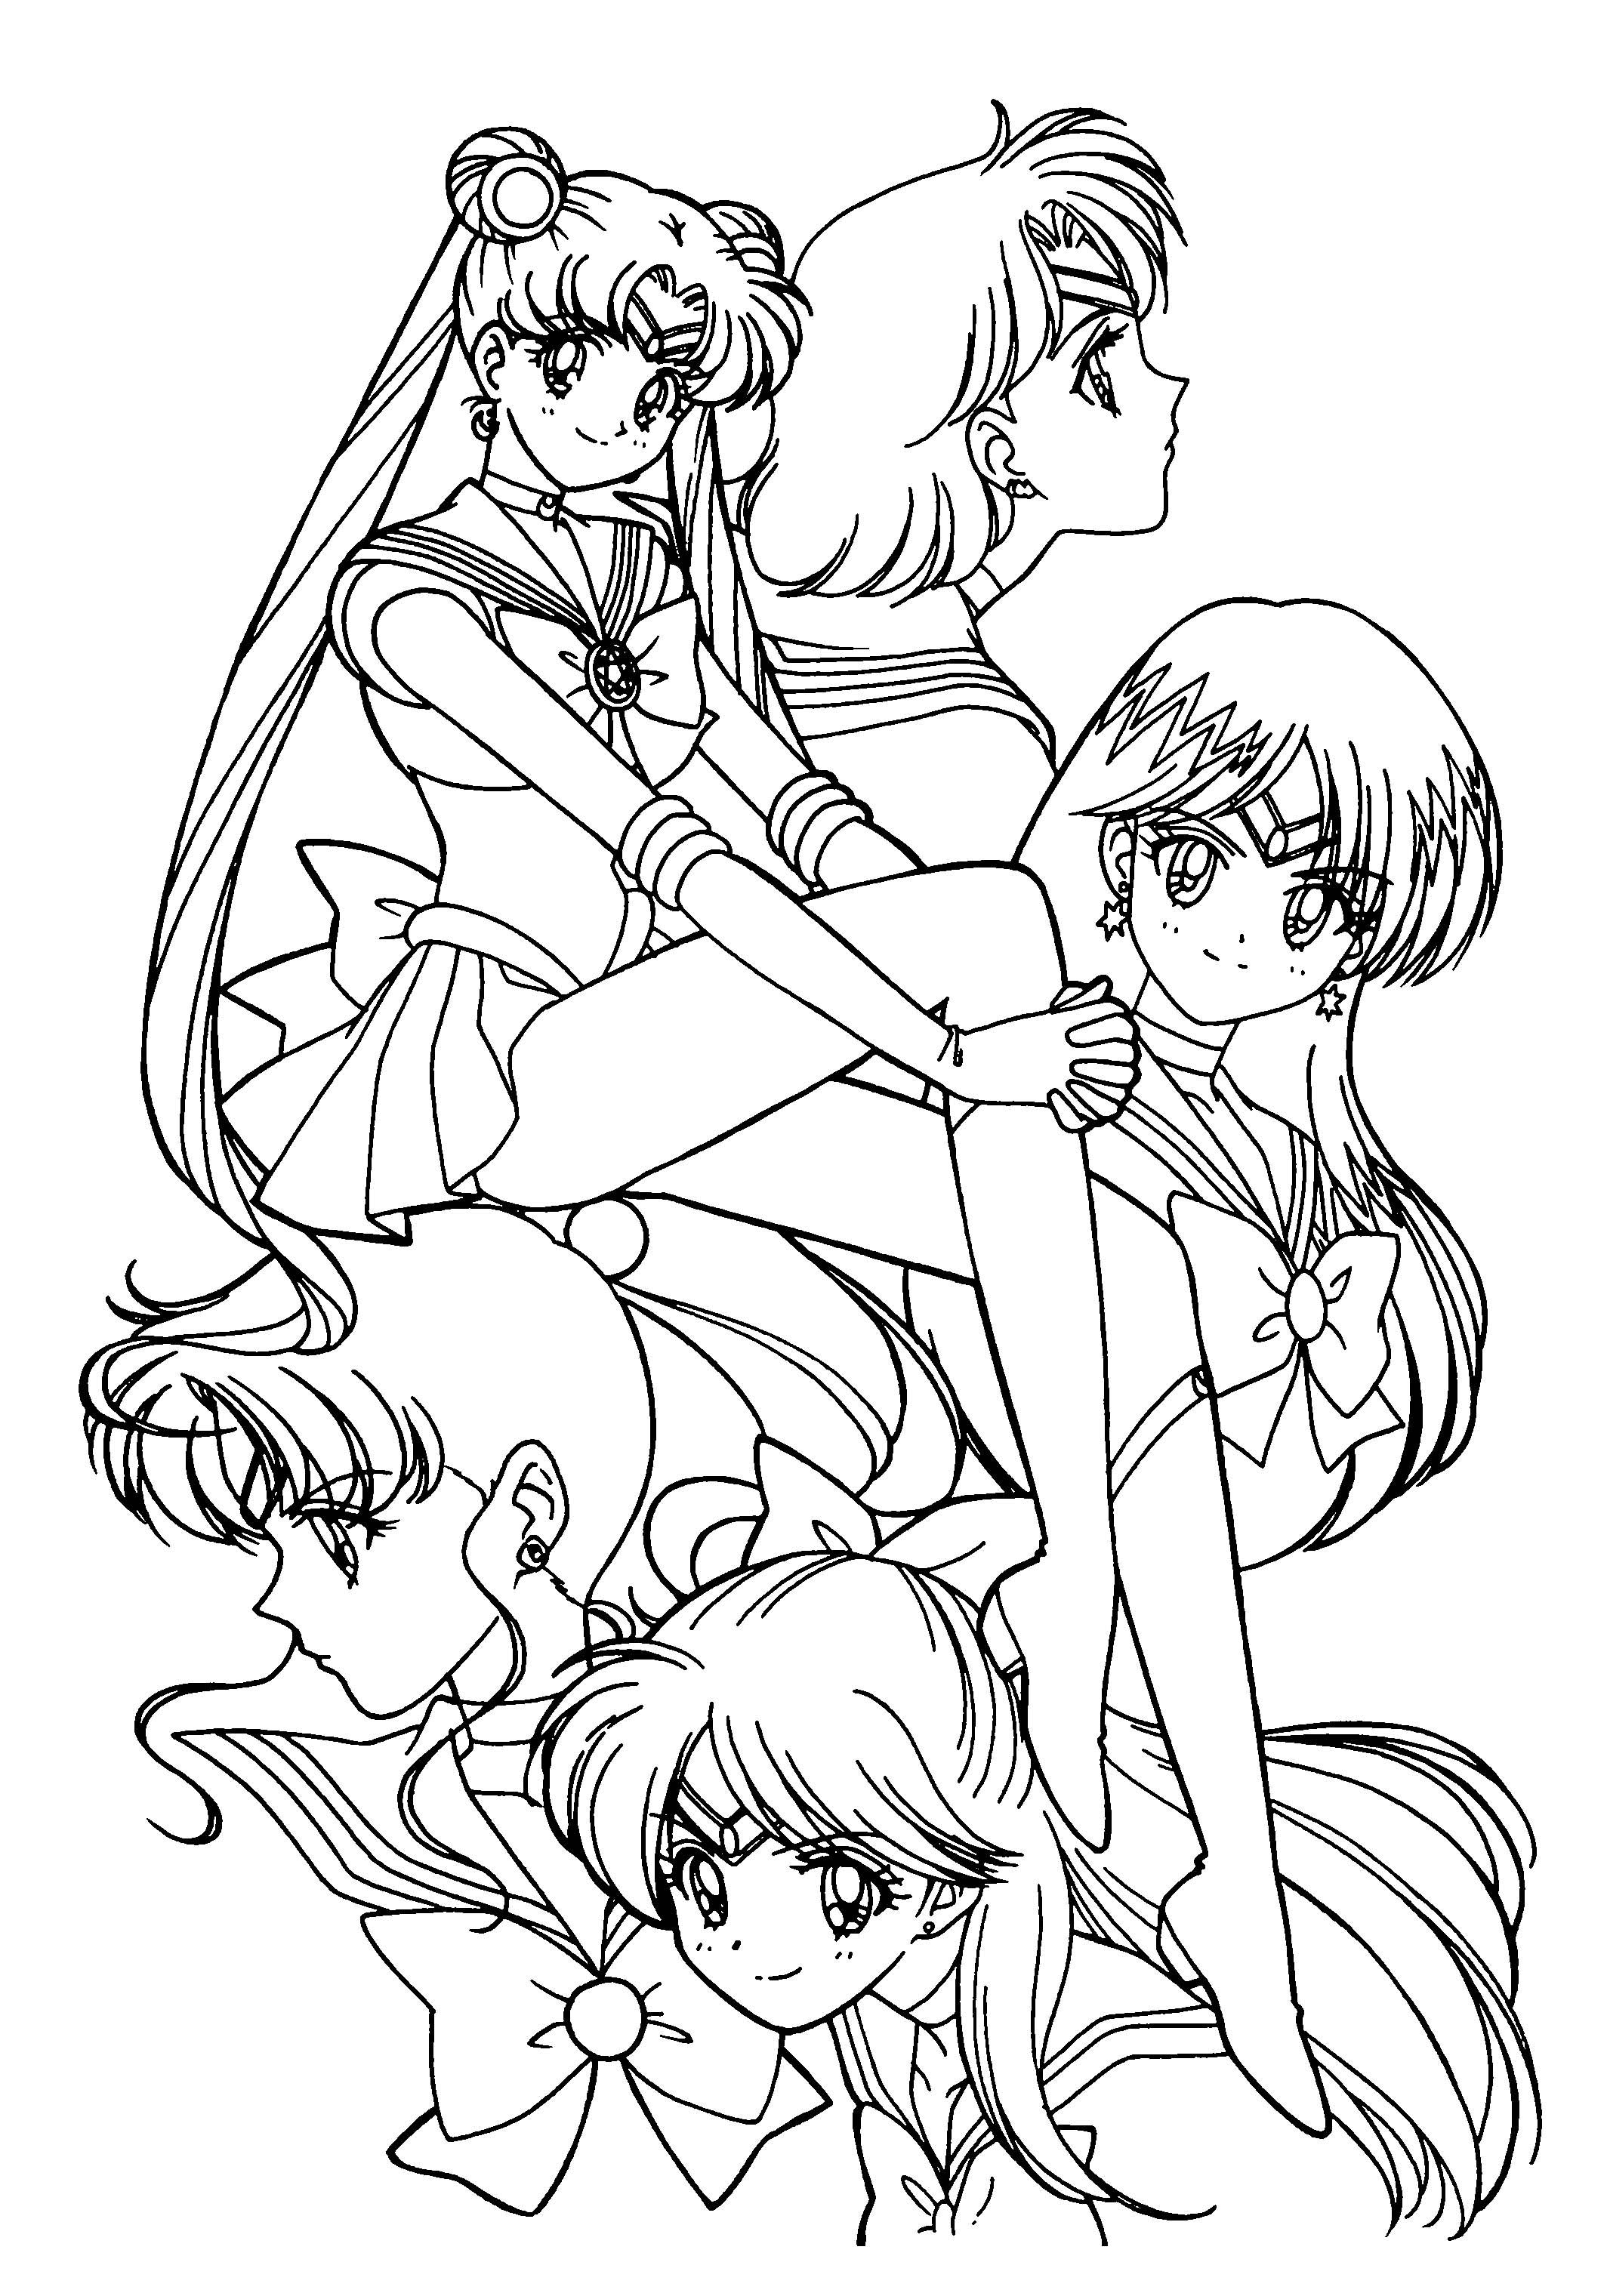 Sailor Moon Coloring Pages Printable sailor moon